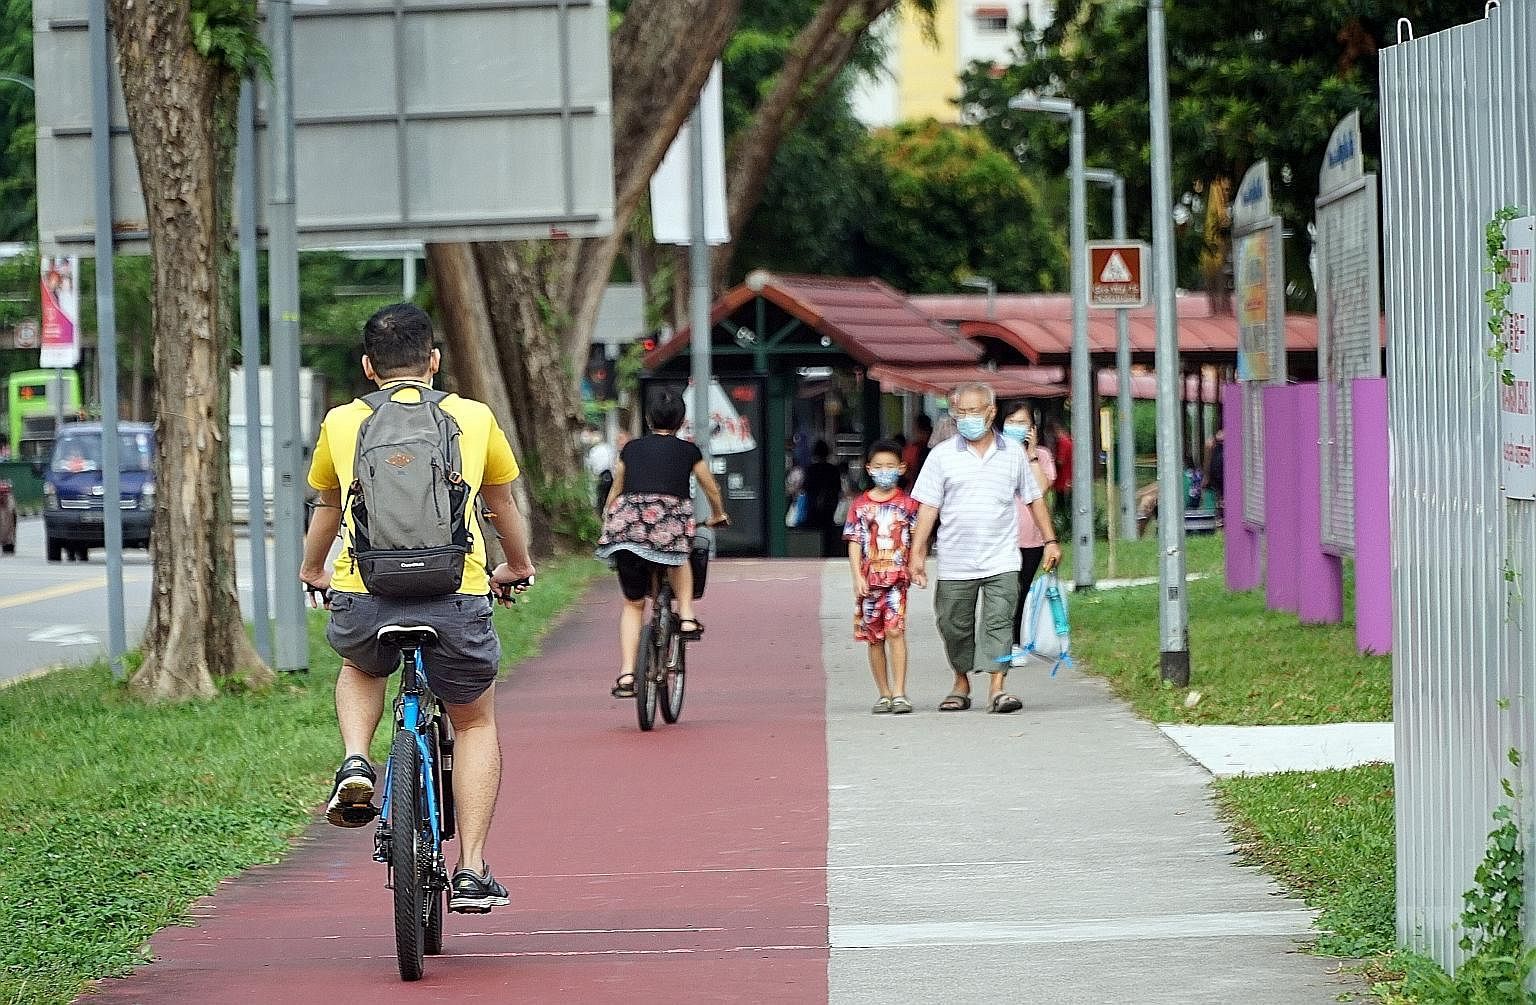 """Cyclists in Ang Mo Kio earlier this month. Transport Minister Ong Ye Kung said yesterday the reduced traffic and new travel patterns created by Covid-19 have opened a """"window of opportunity to reimagine"""" the road infrastructure, and certain underused"""